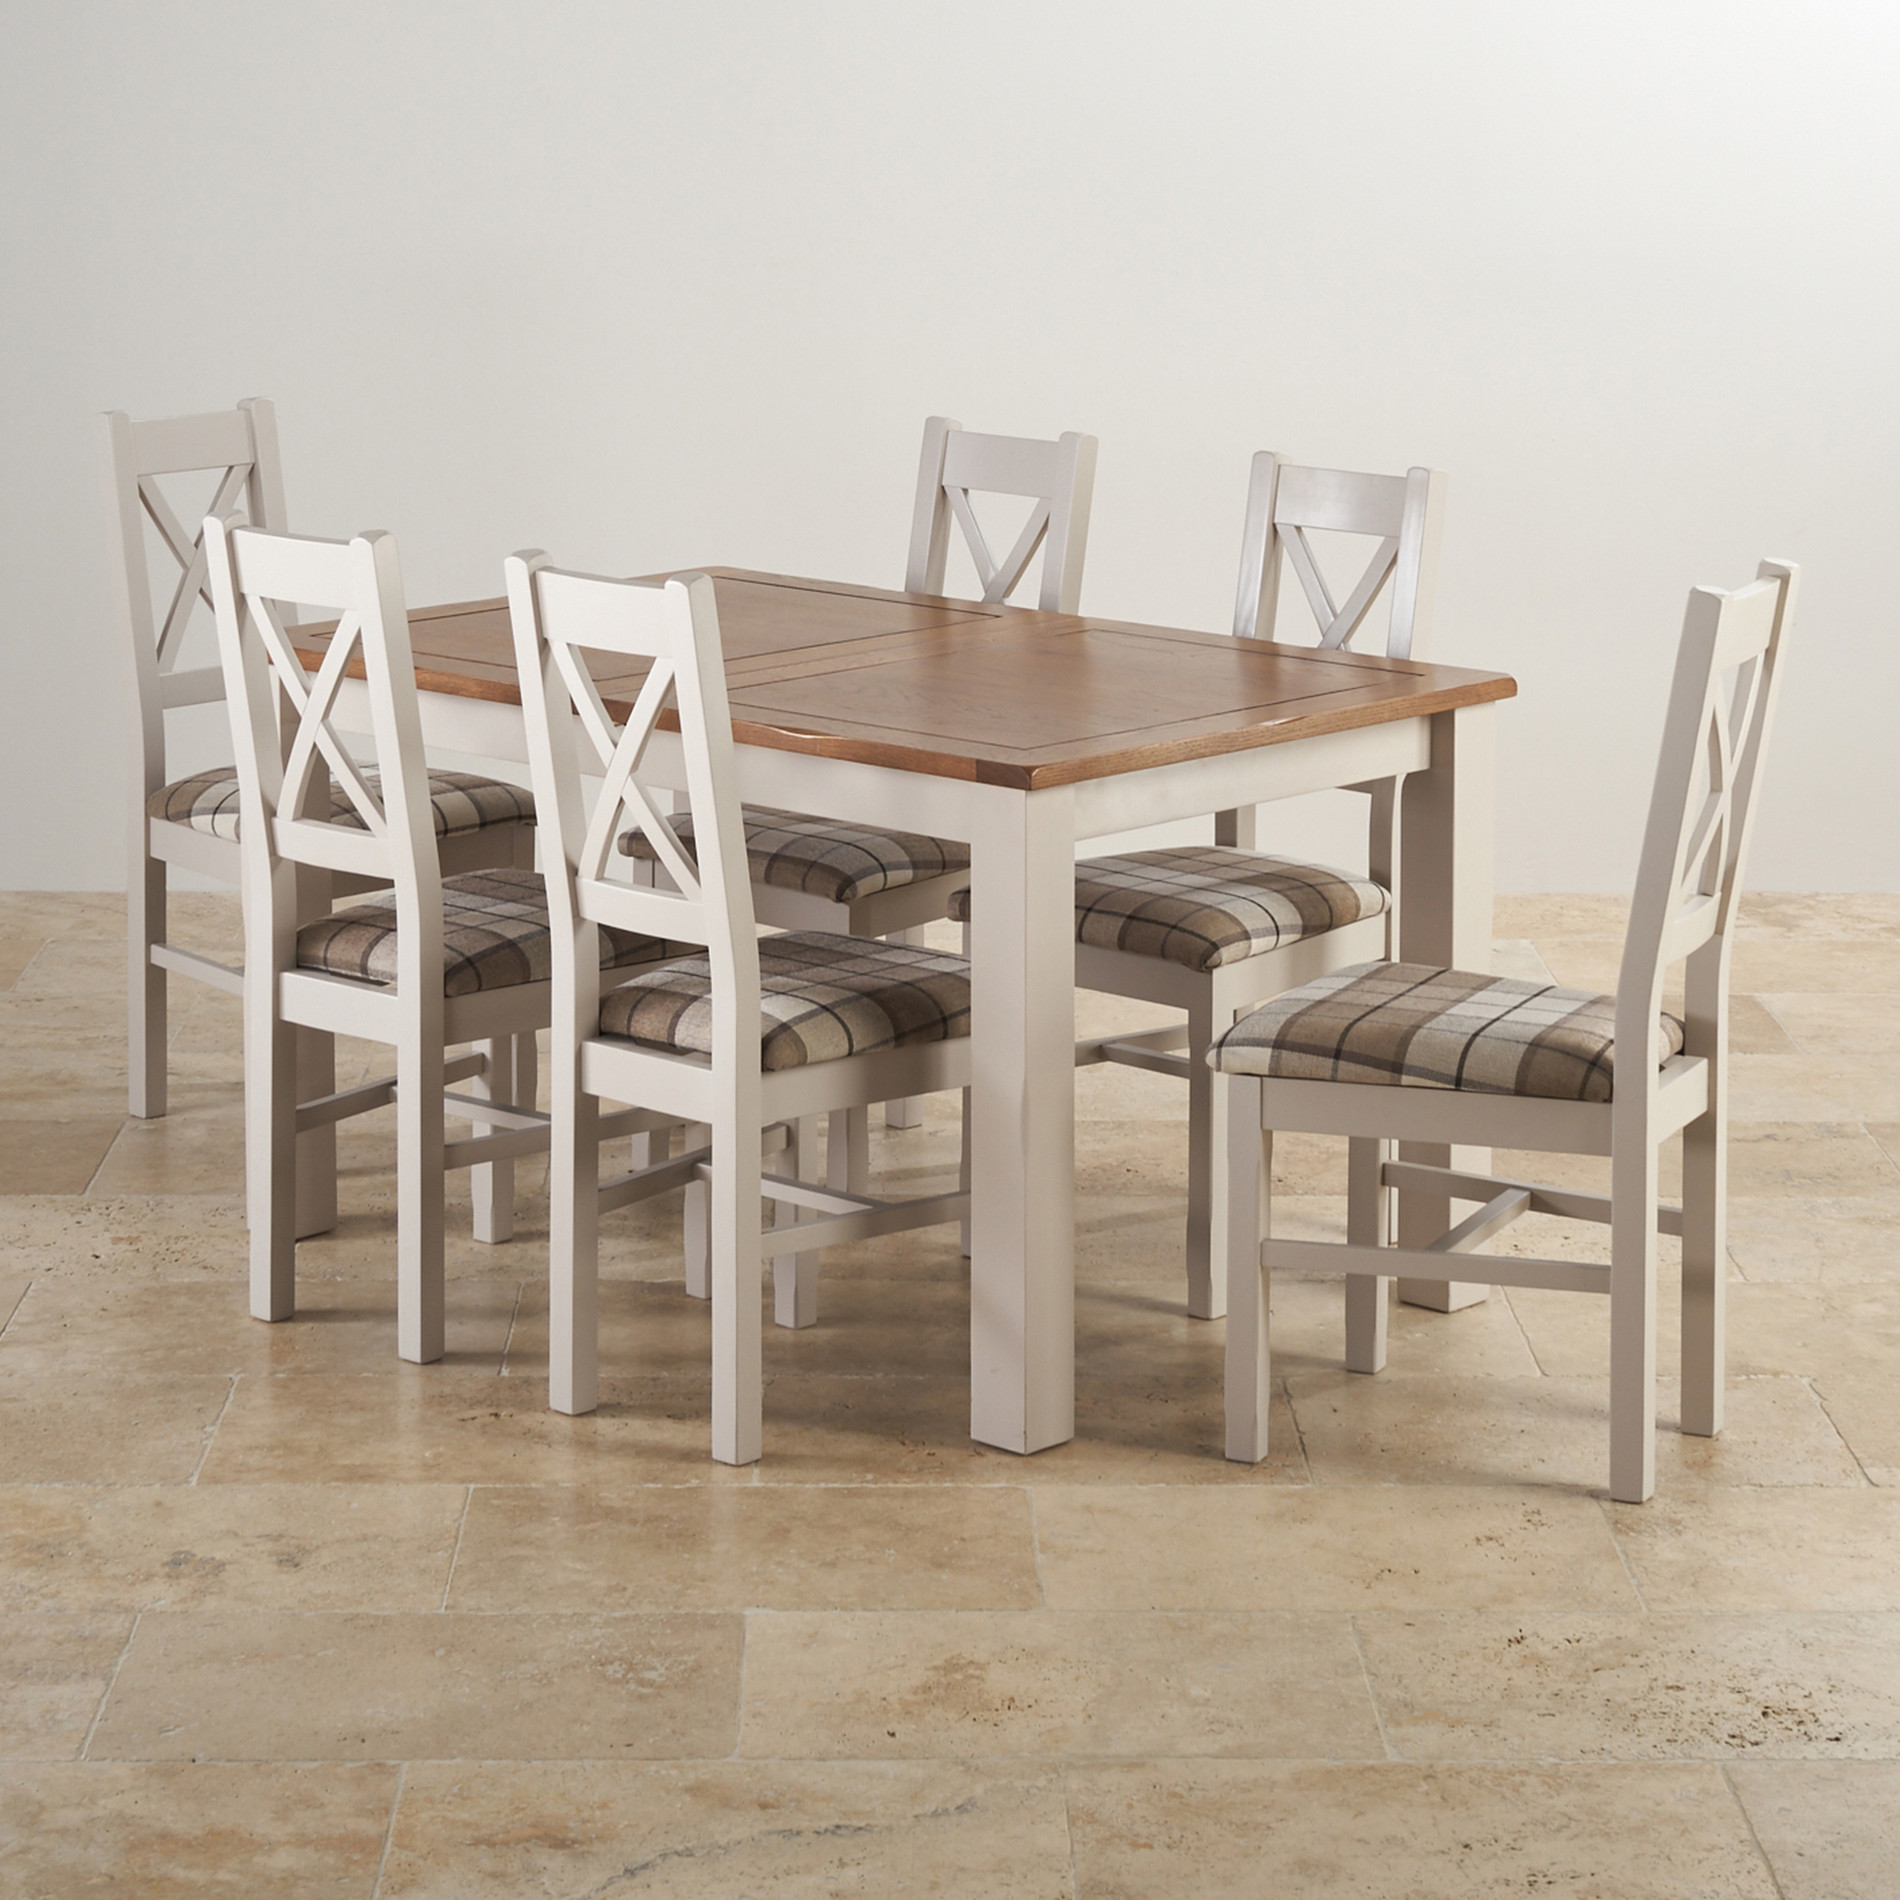 Rustic solid oak and painted dining set with six chairs.